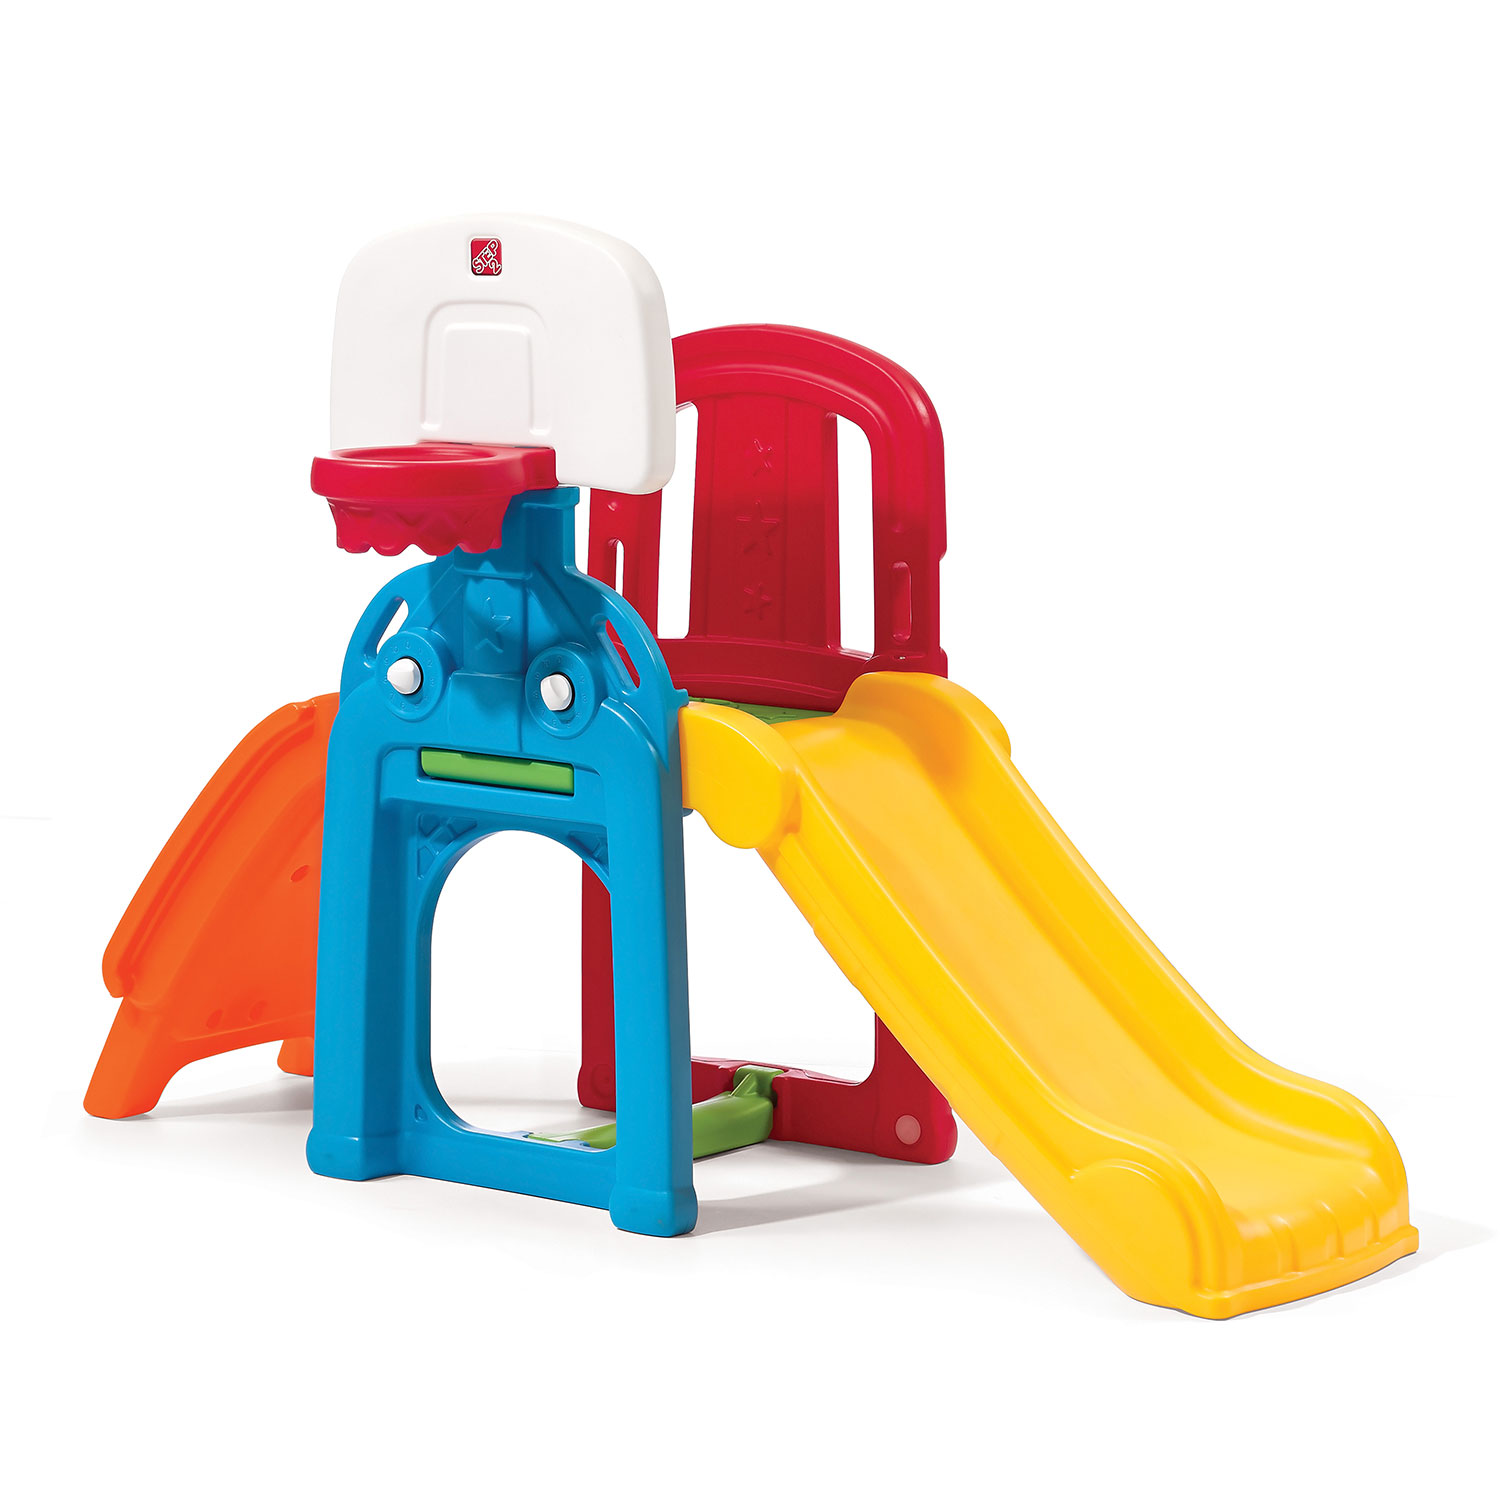 Step2 Toddler Kid Outdoor Game Time Sports Climber Activity Jungle